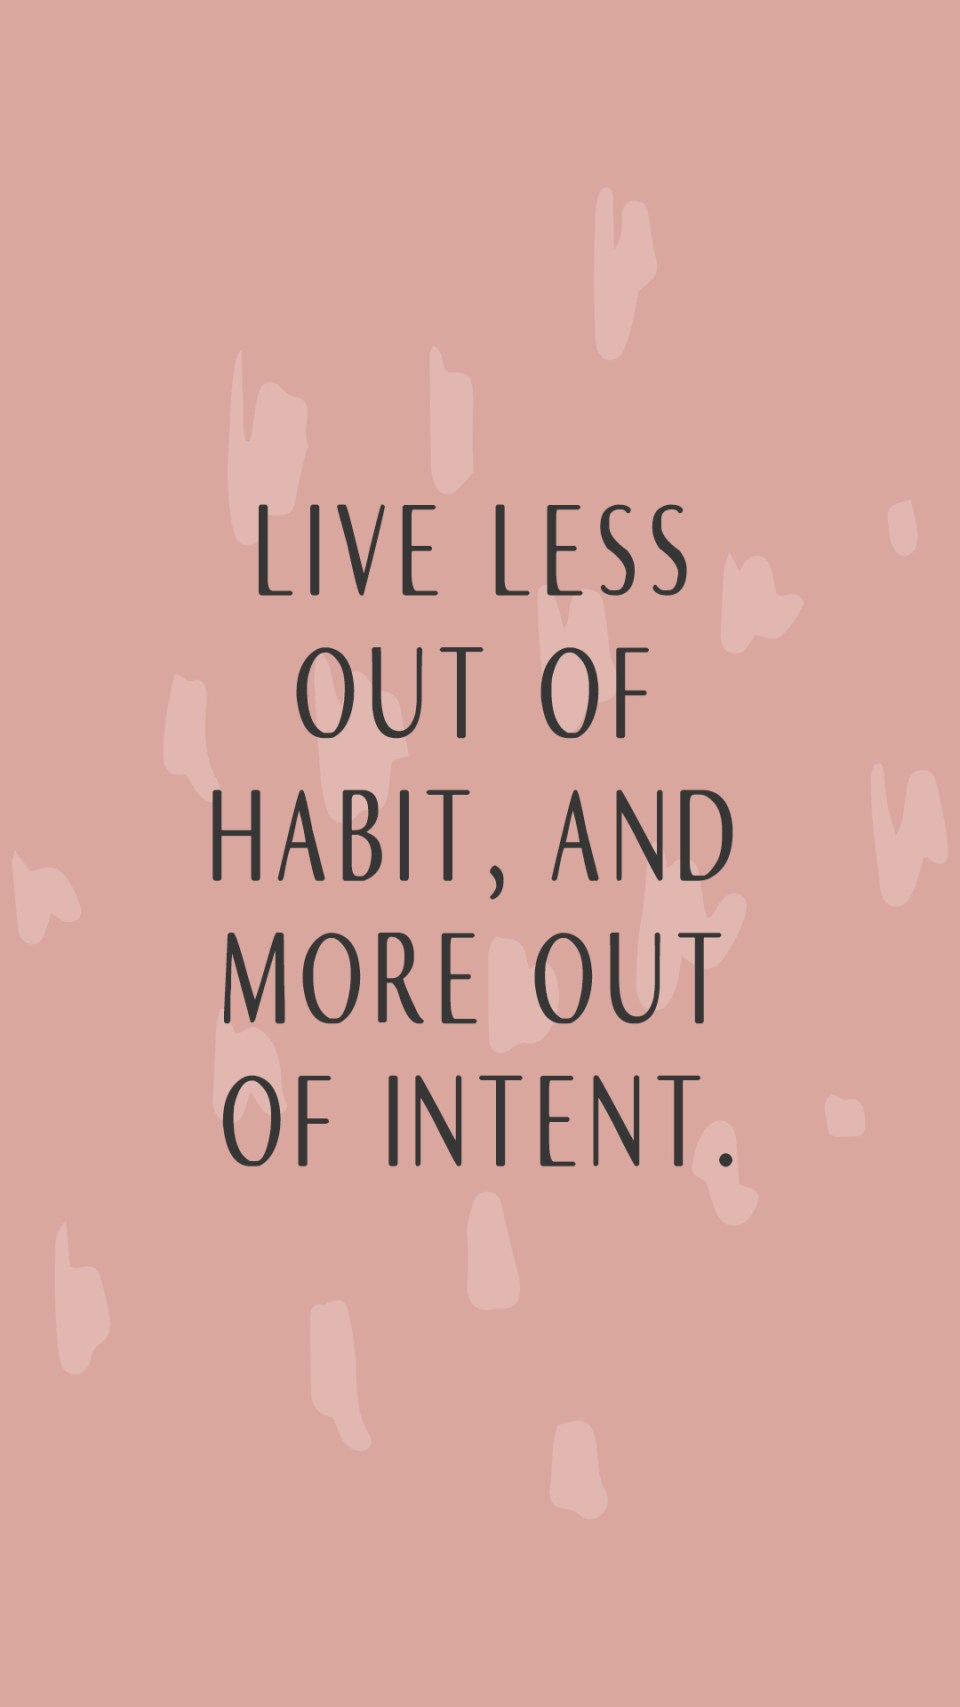 """""""Live less out of habit and more out of intent."""" lockscreens"""